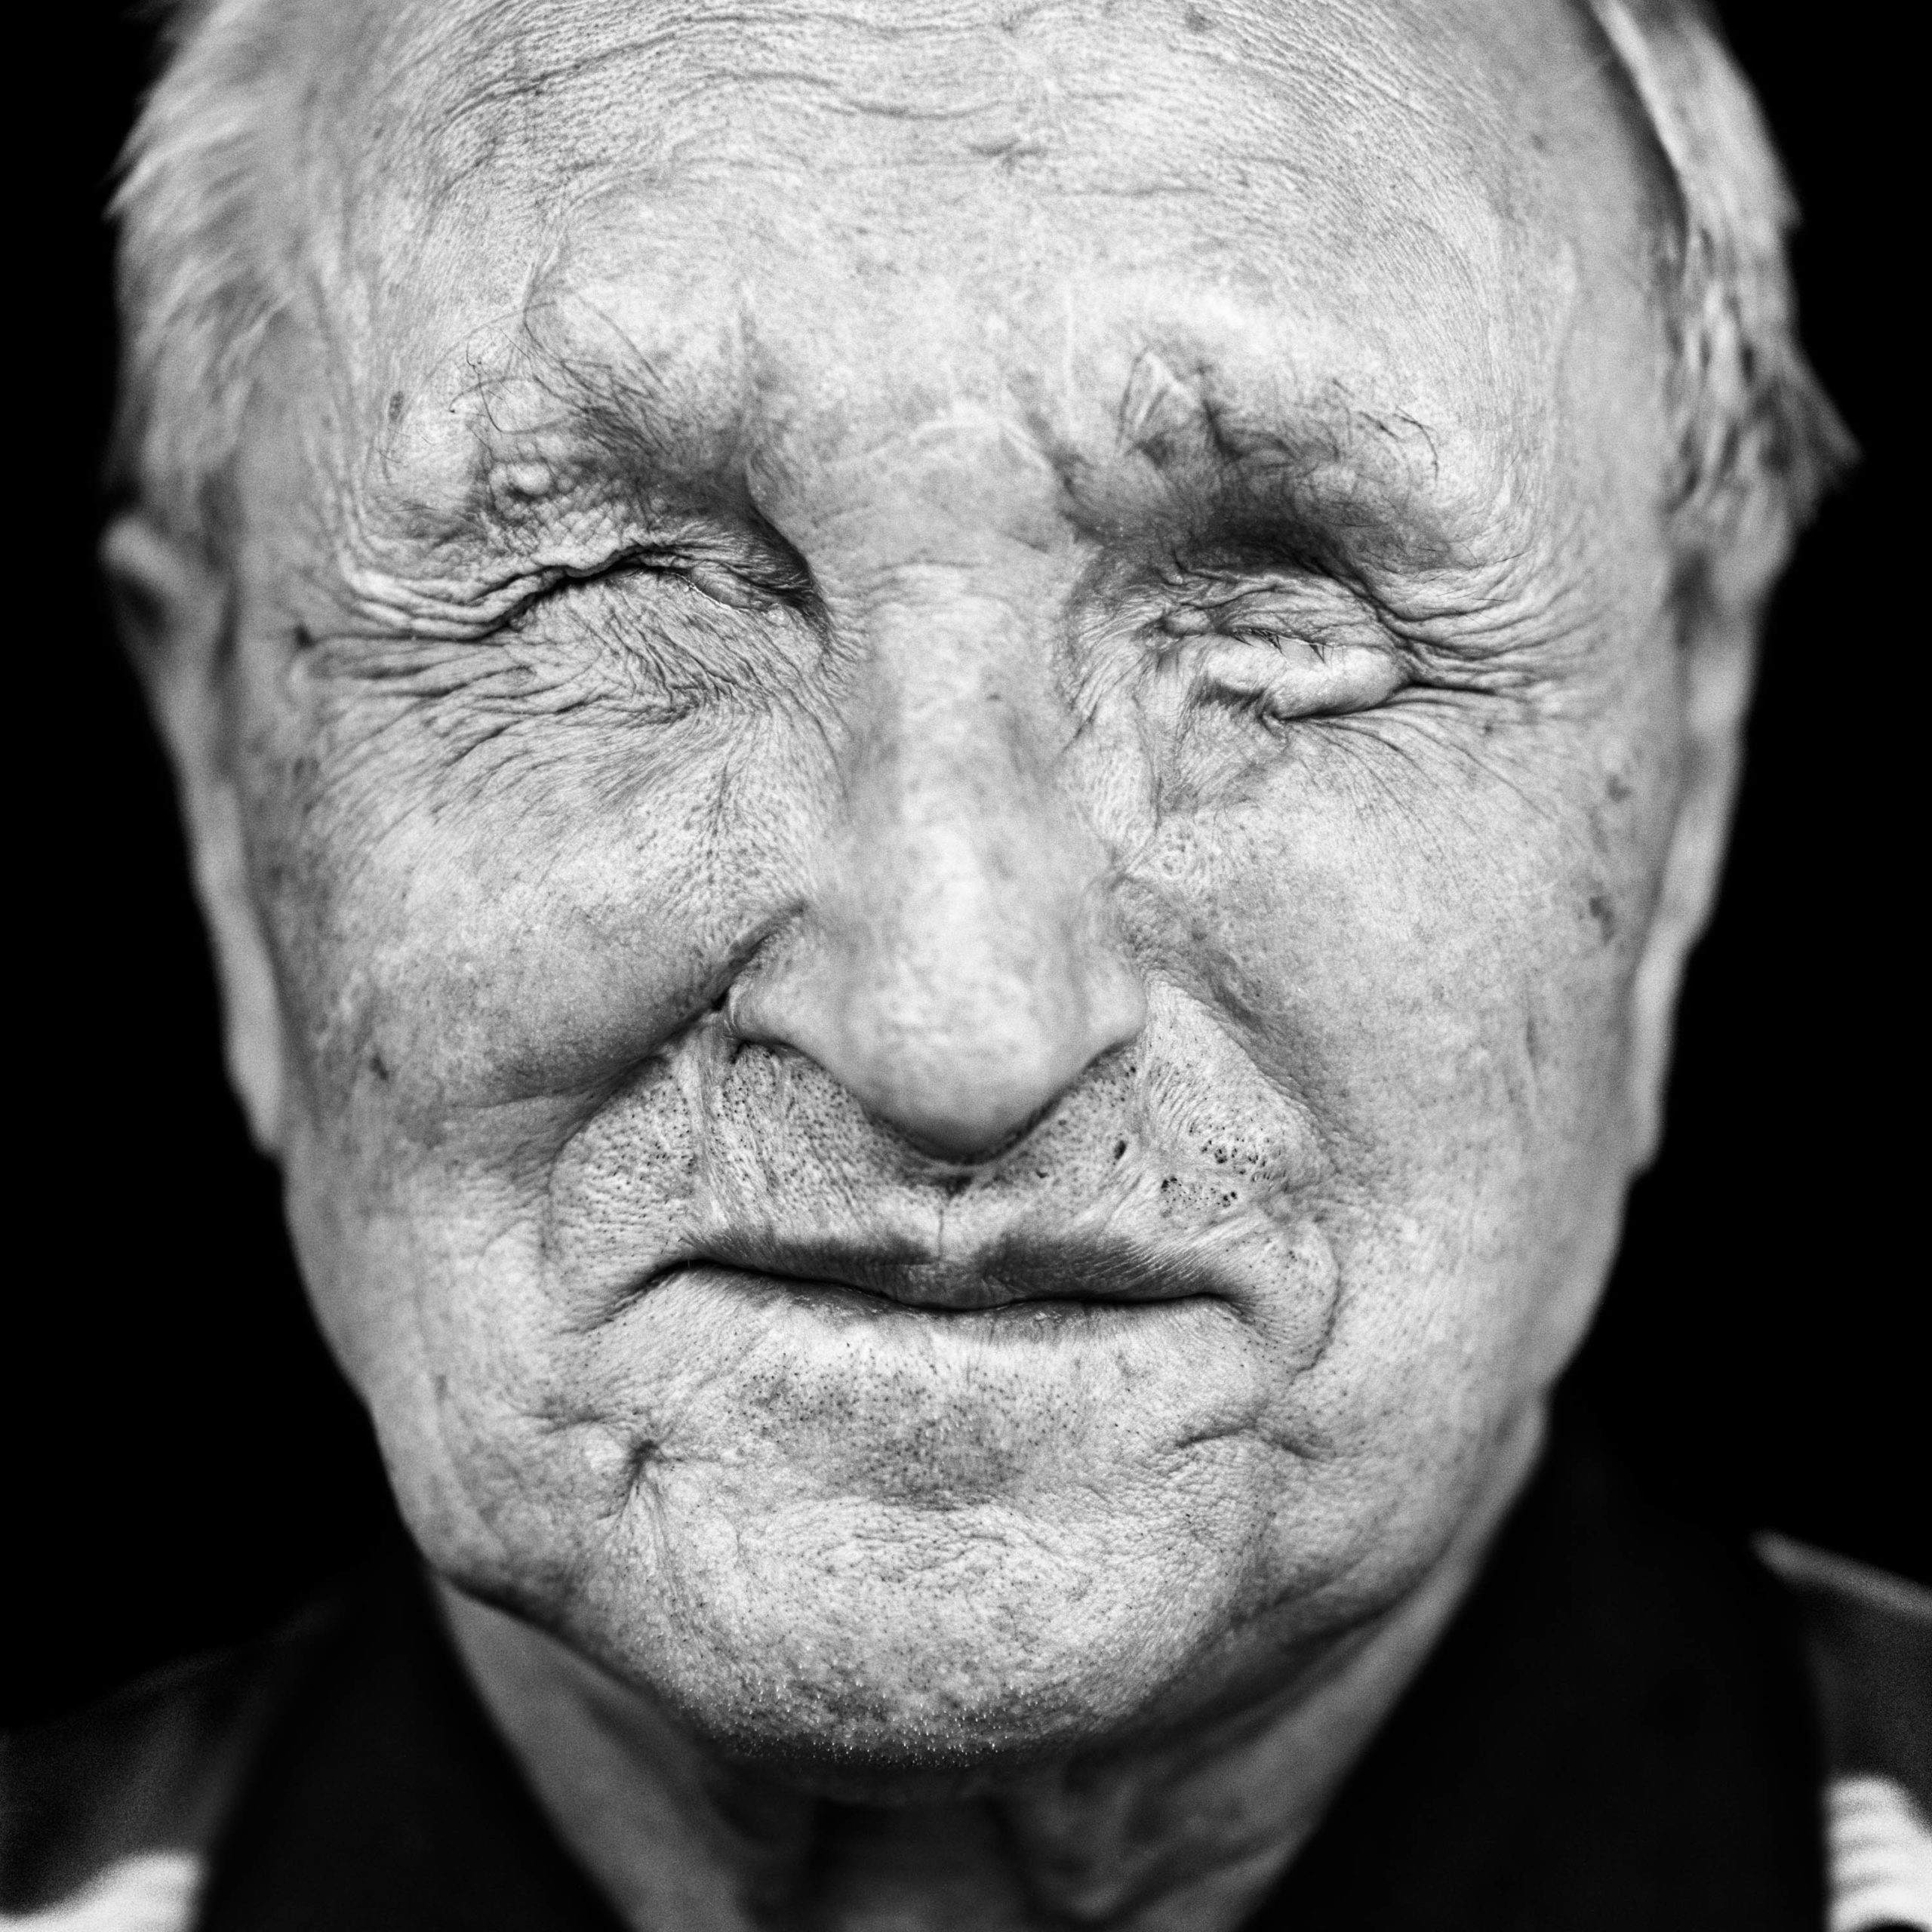 """Valeriy Nezemskiy (USSR, 1932). Interview outtake: """"I got fragments in my face and was flung against the wall by the blast. I could hear nothing. I felt blood, and then I lost consciousness."""""""